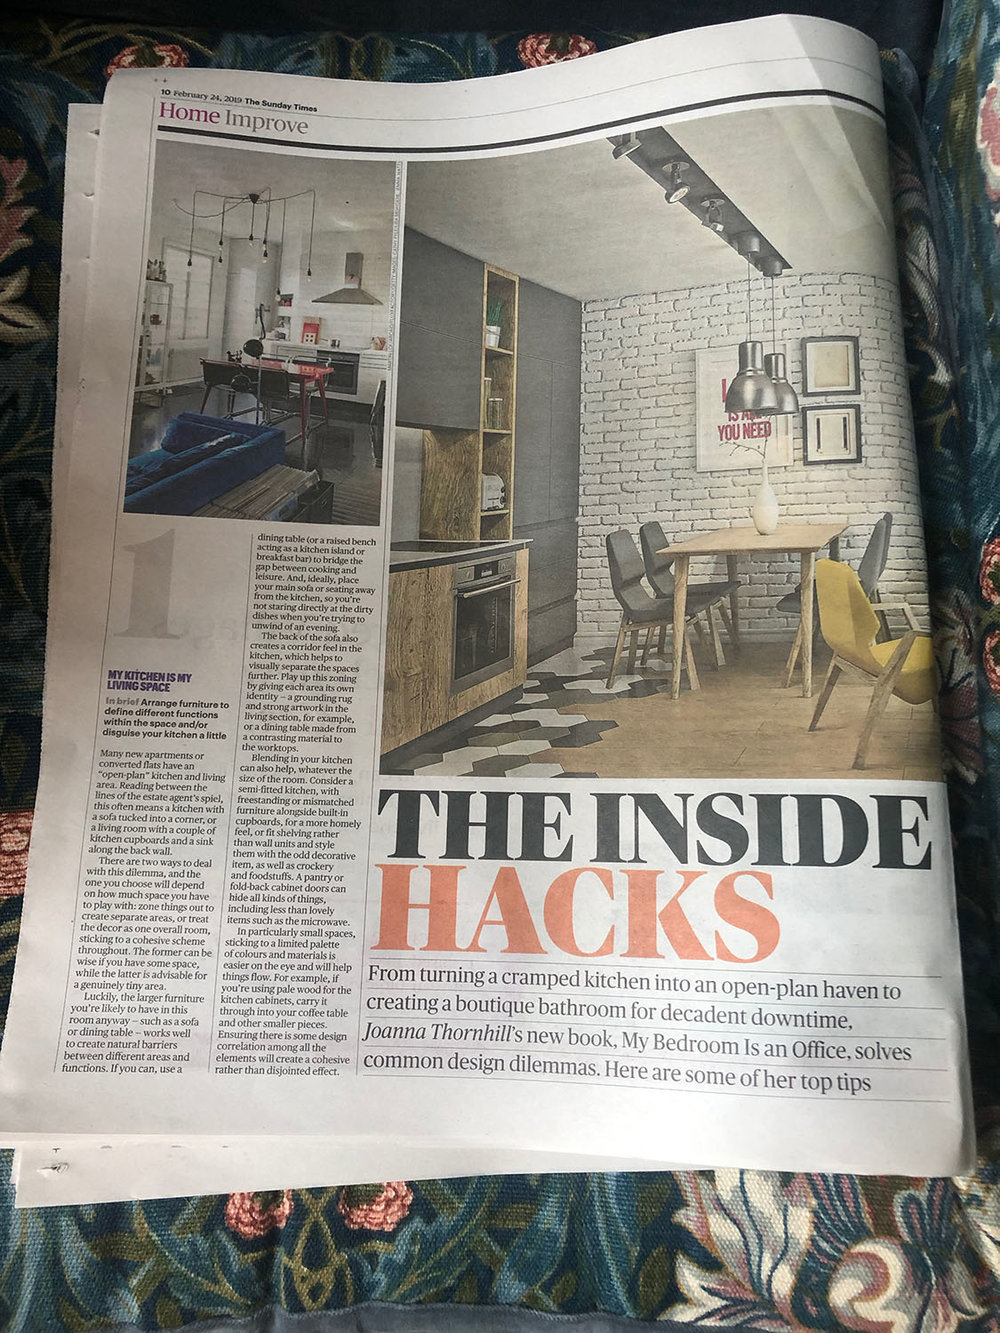 Sunday Times Home featuring My Bedroom Is an Office by Joanna Thornhill 24th Feb 2019 - P1 closer.jpg